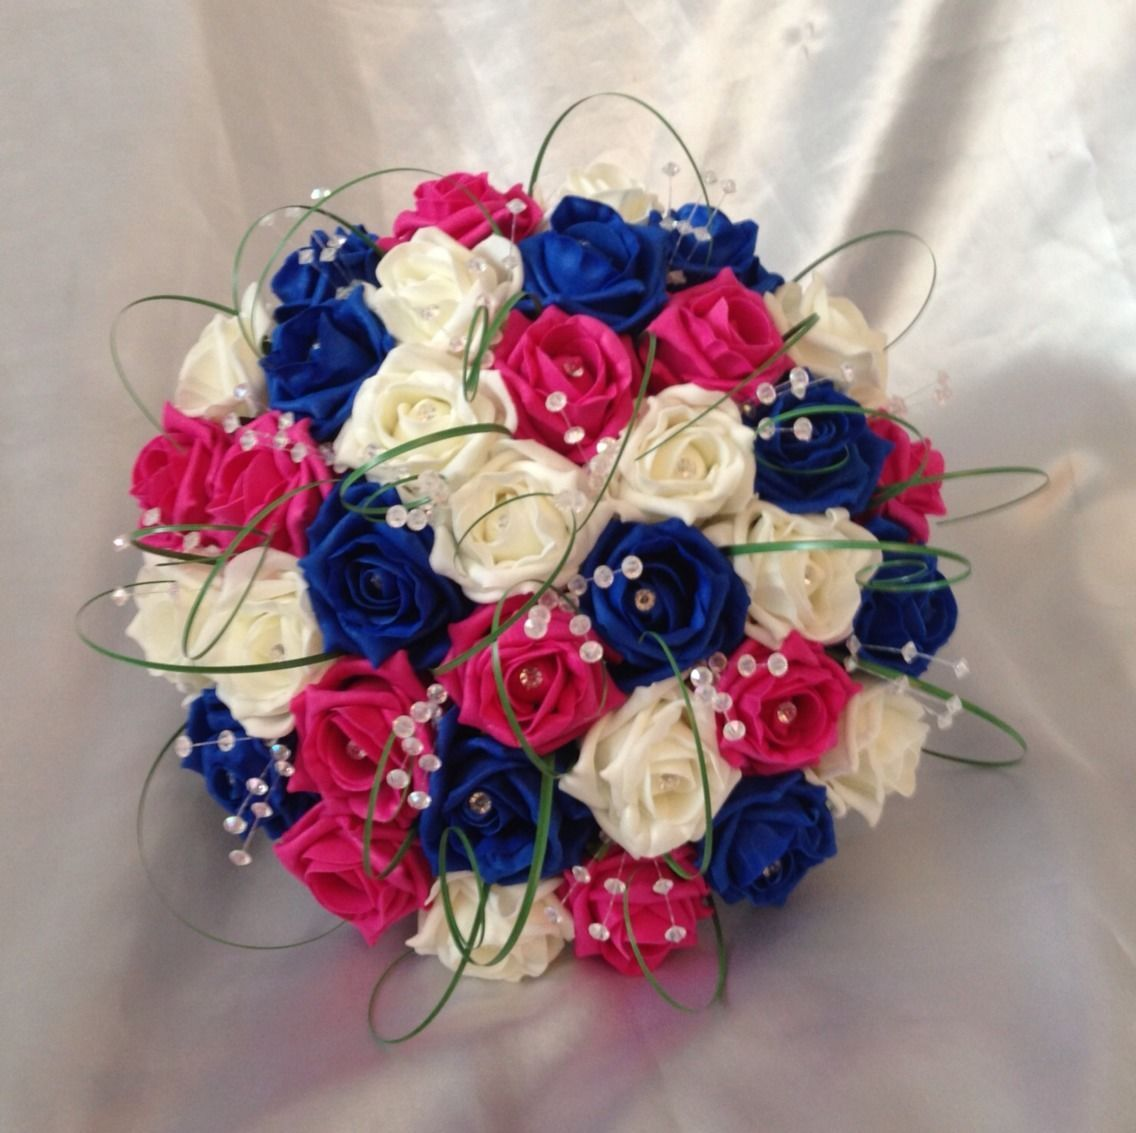 Wedding Cake Flower Decorations Uk